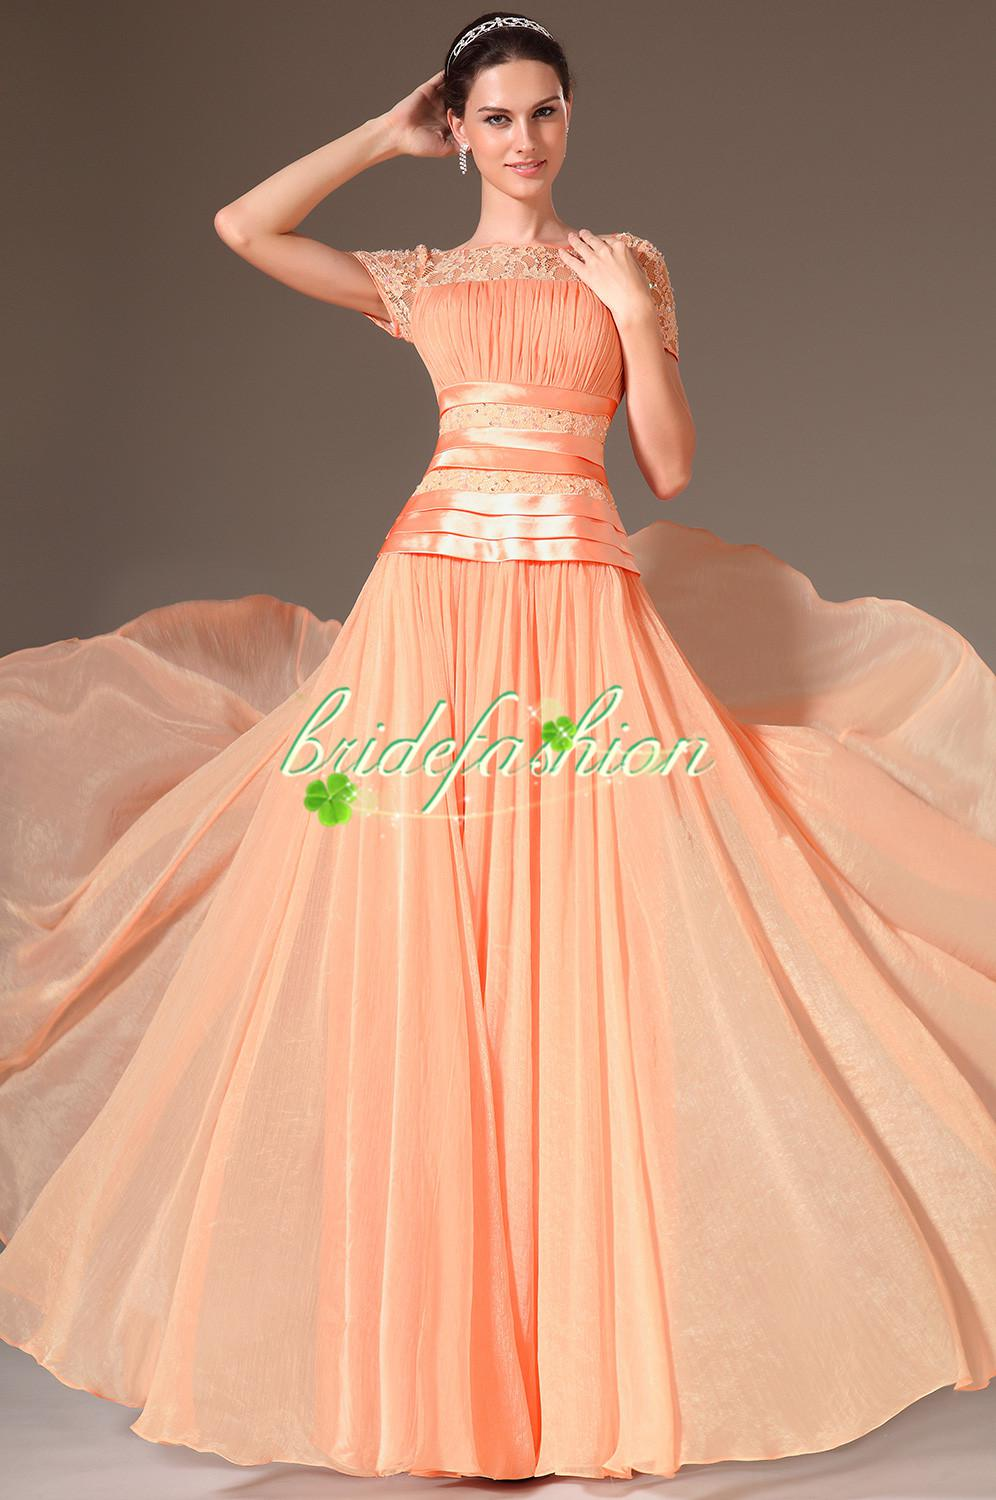 2014 Beautydesign graceful sheath satin mother of the bride …lace short prom gowns with long sleeves bolero jacket BO1711